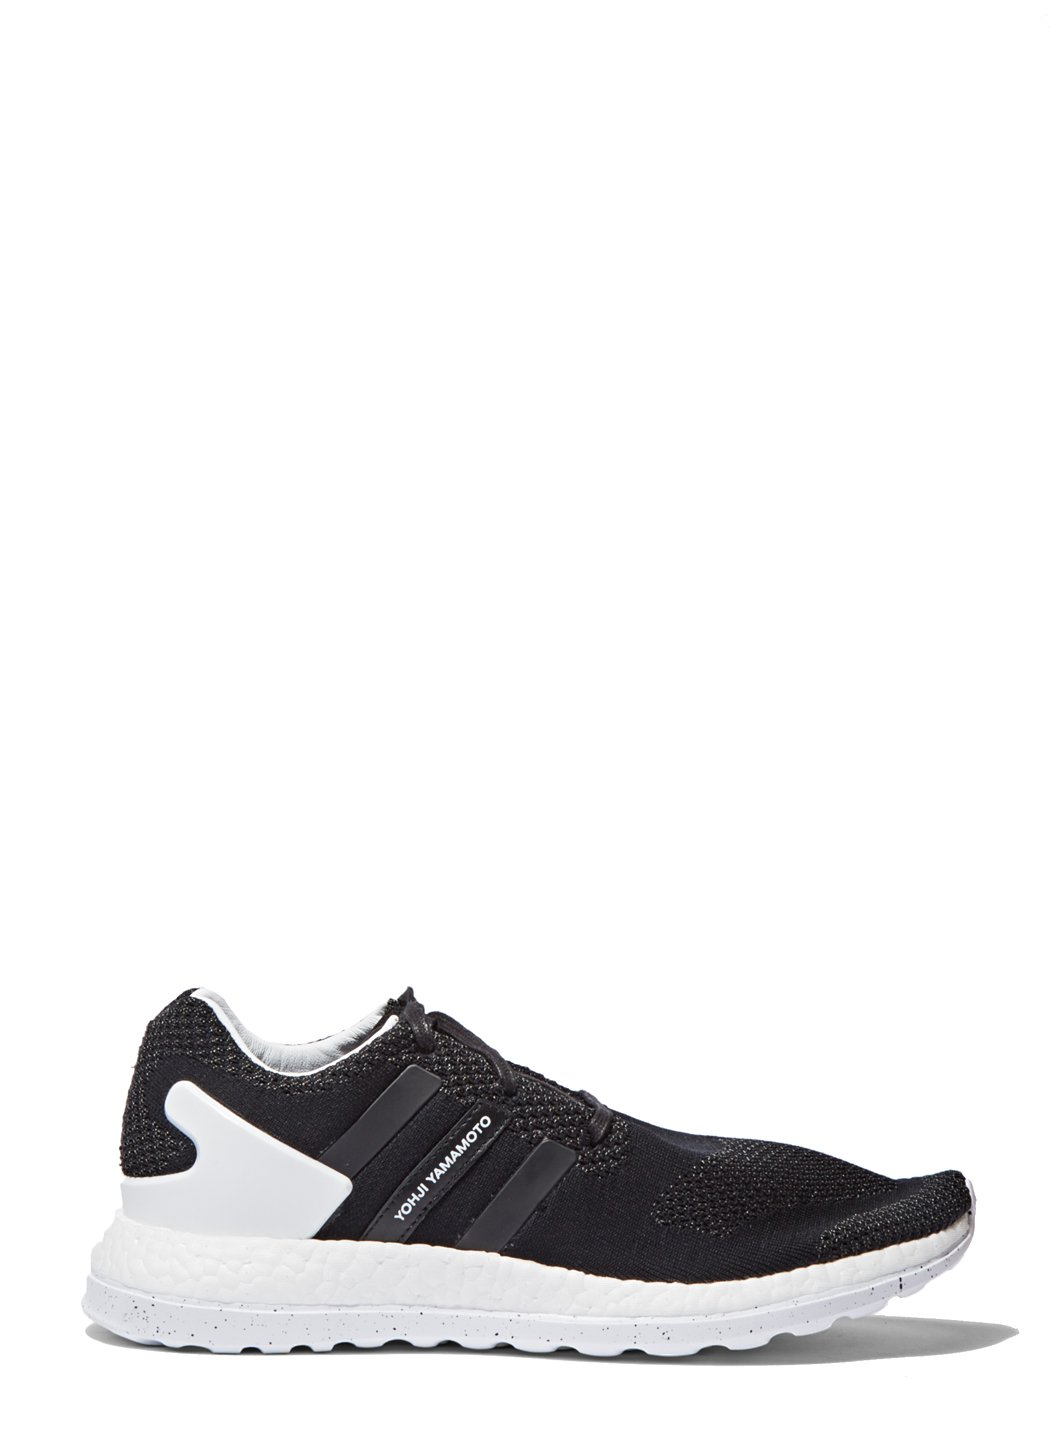 989369ca4f4d Lyst - Y-3 Pure Boost Zg Knit Sneakers in Black for Men